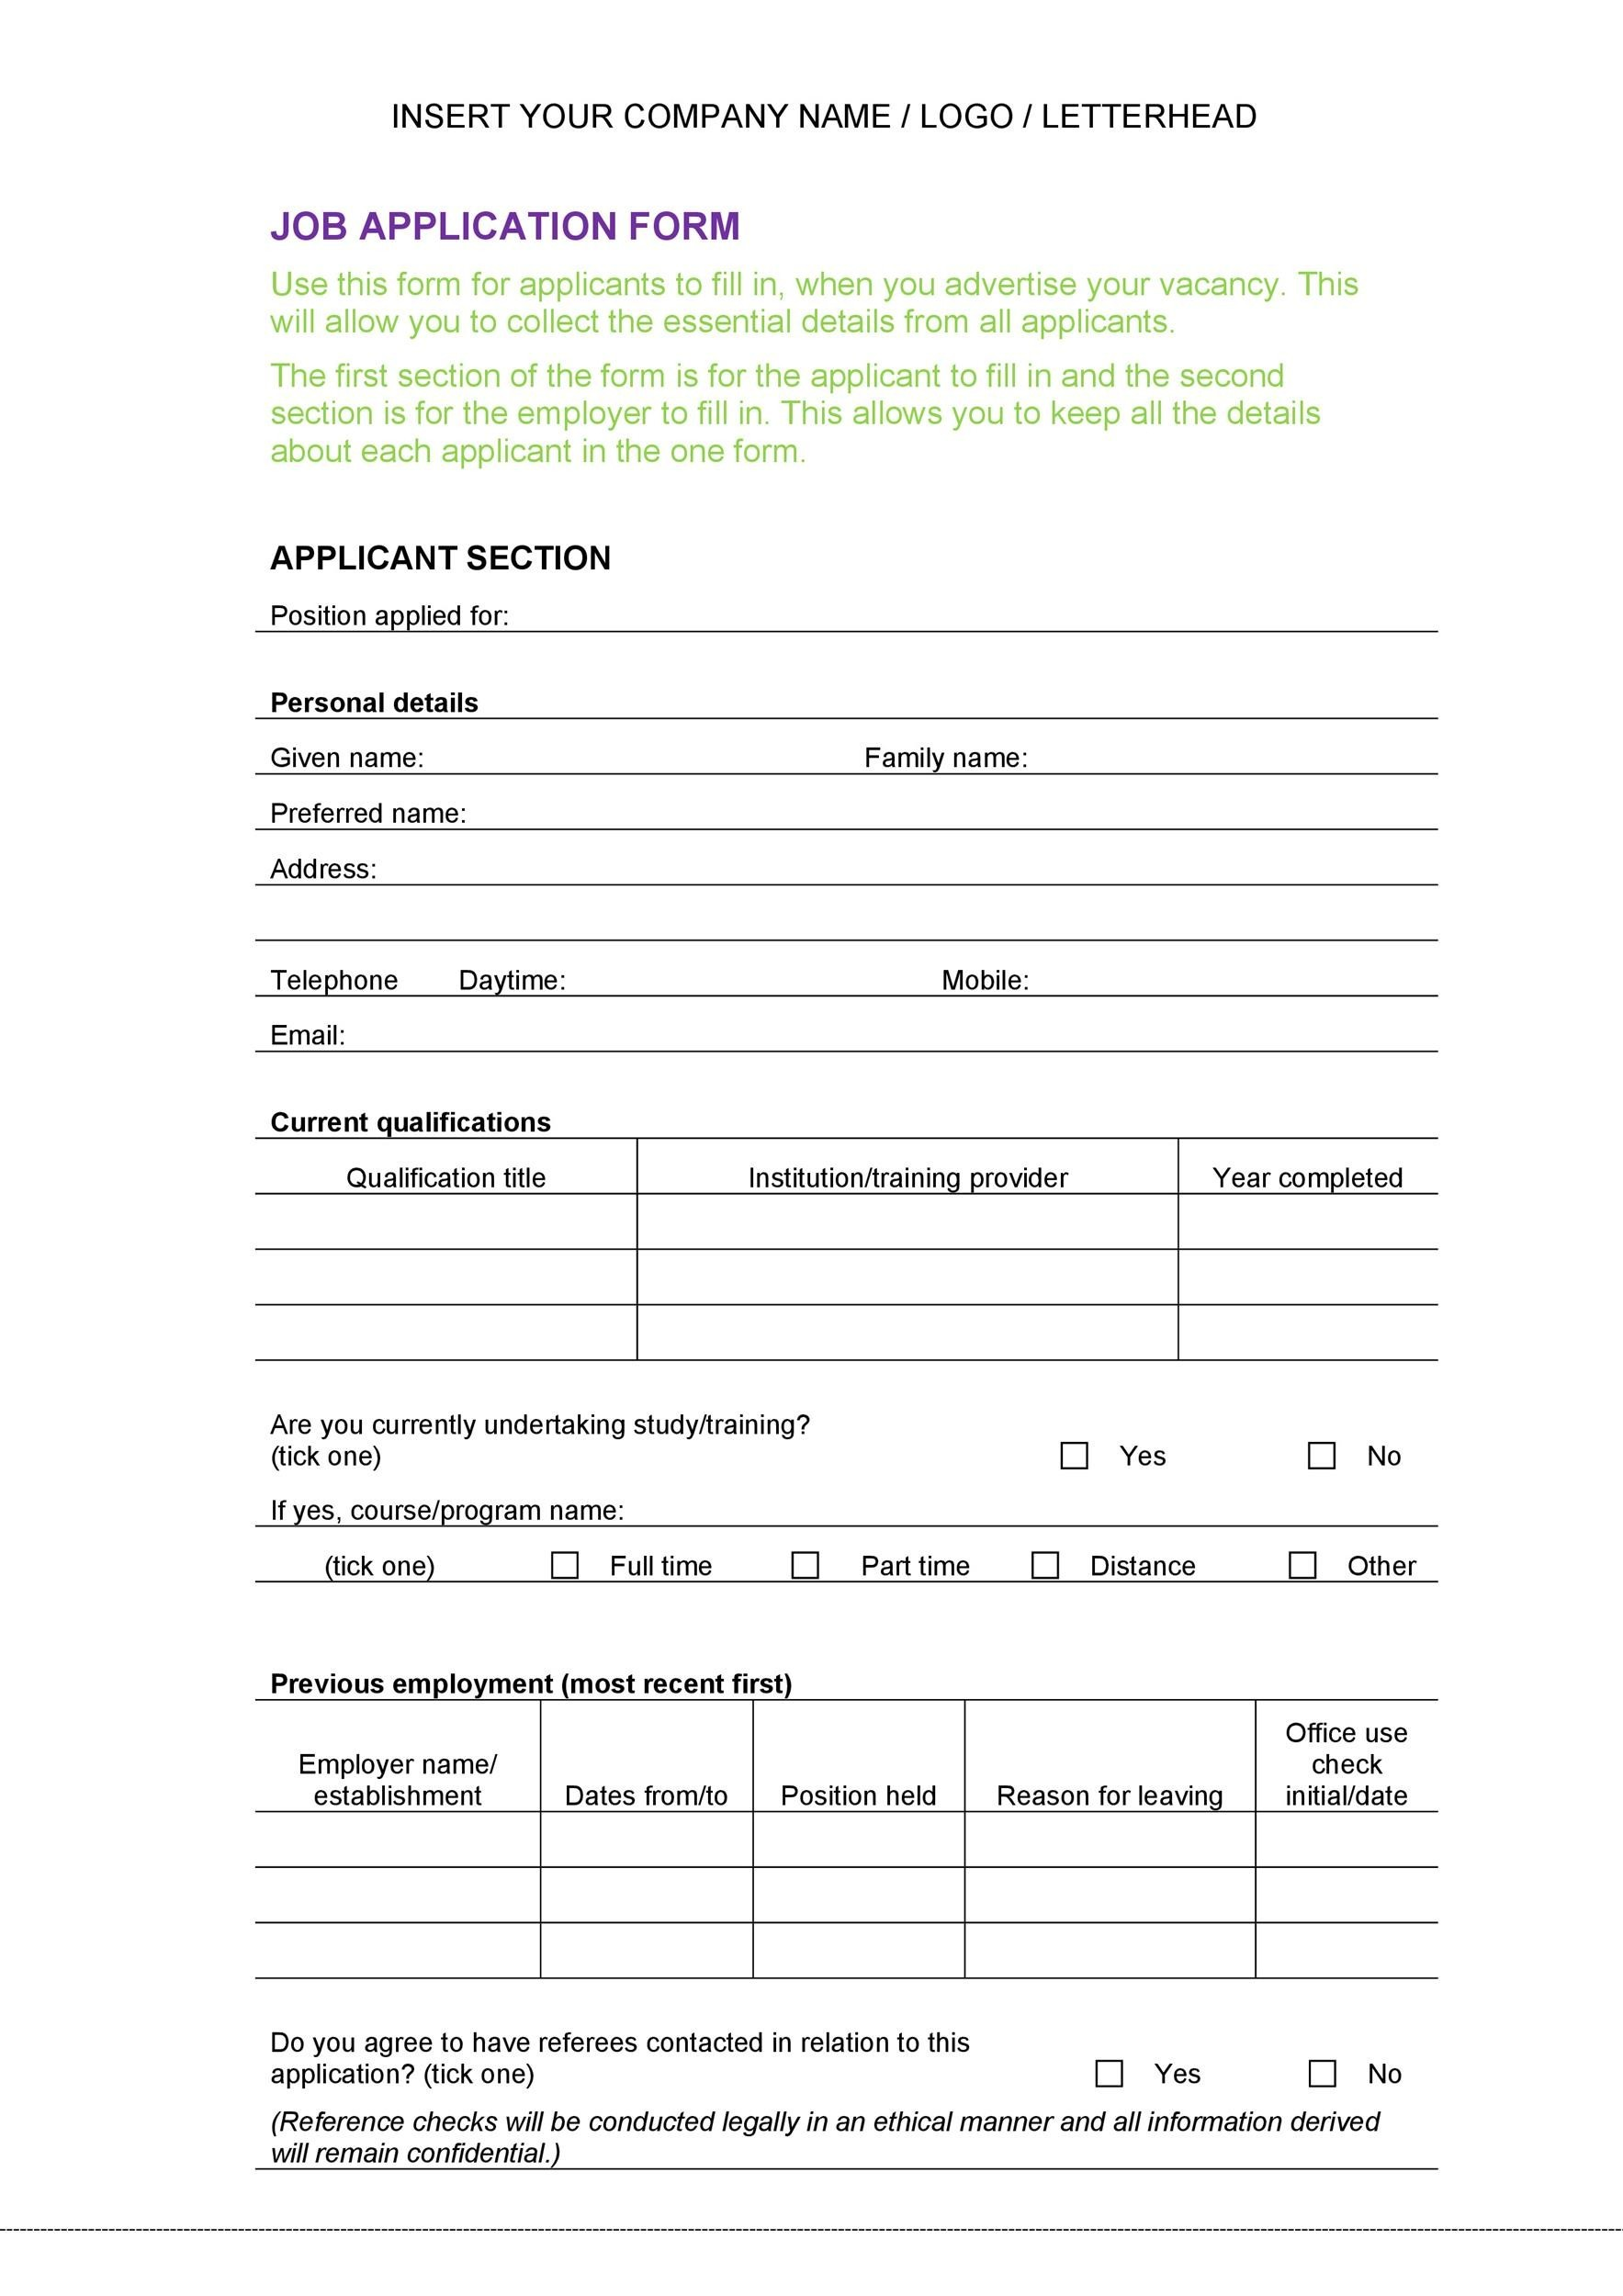 photograph about Free Printable Employment Application Form called 50 Free of charge Jobs / Activity Software program Kind Templates